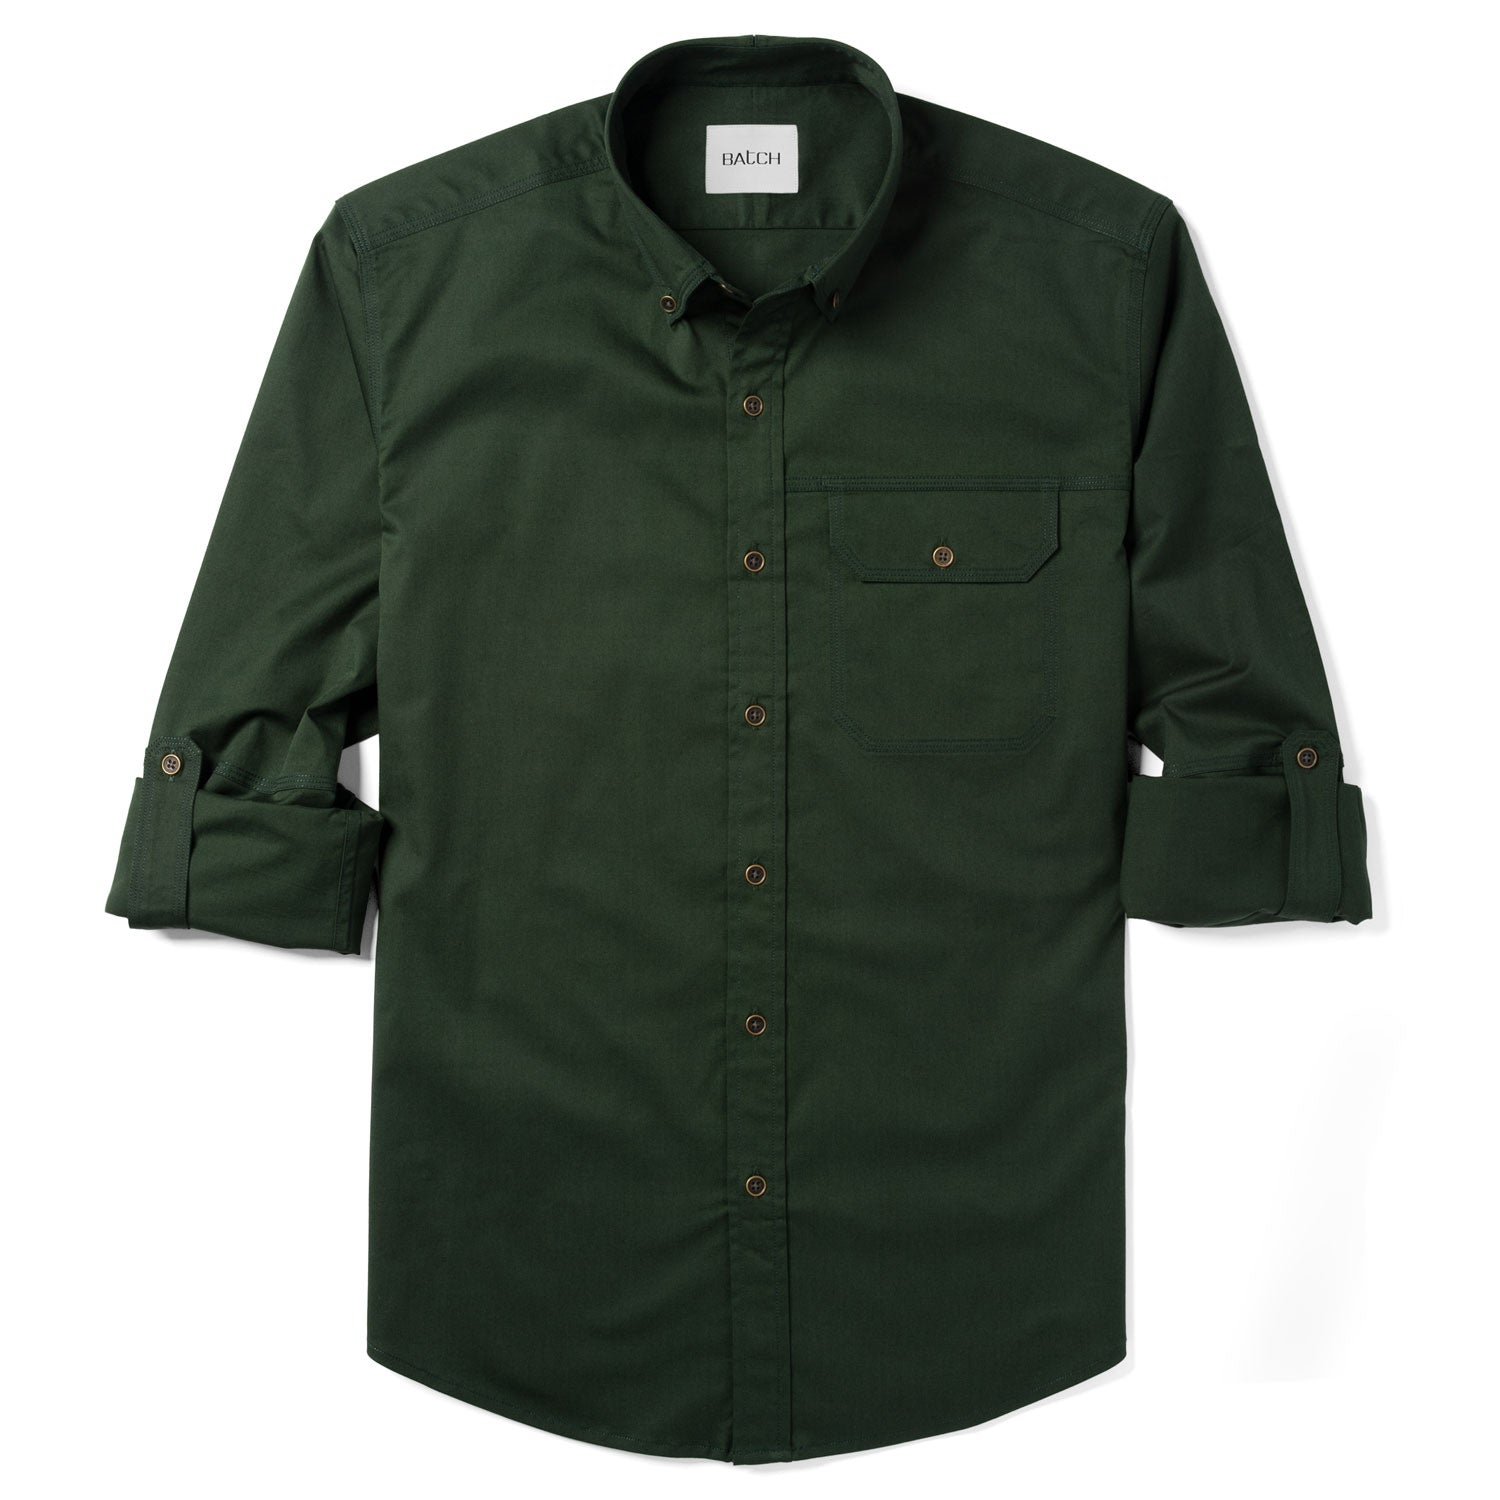 Builder One Pocket Casual Shirt – Olive Green Stretch Twill